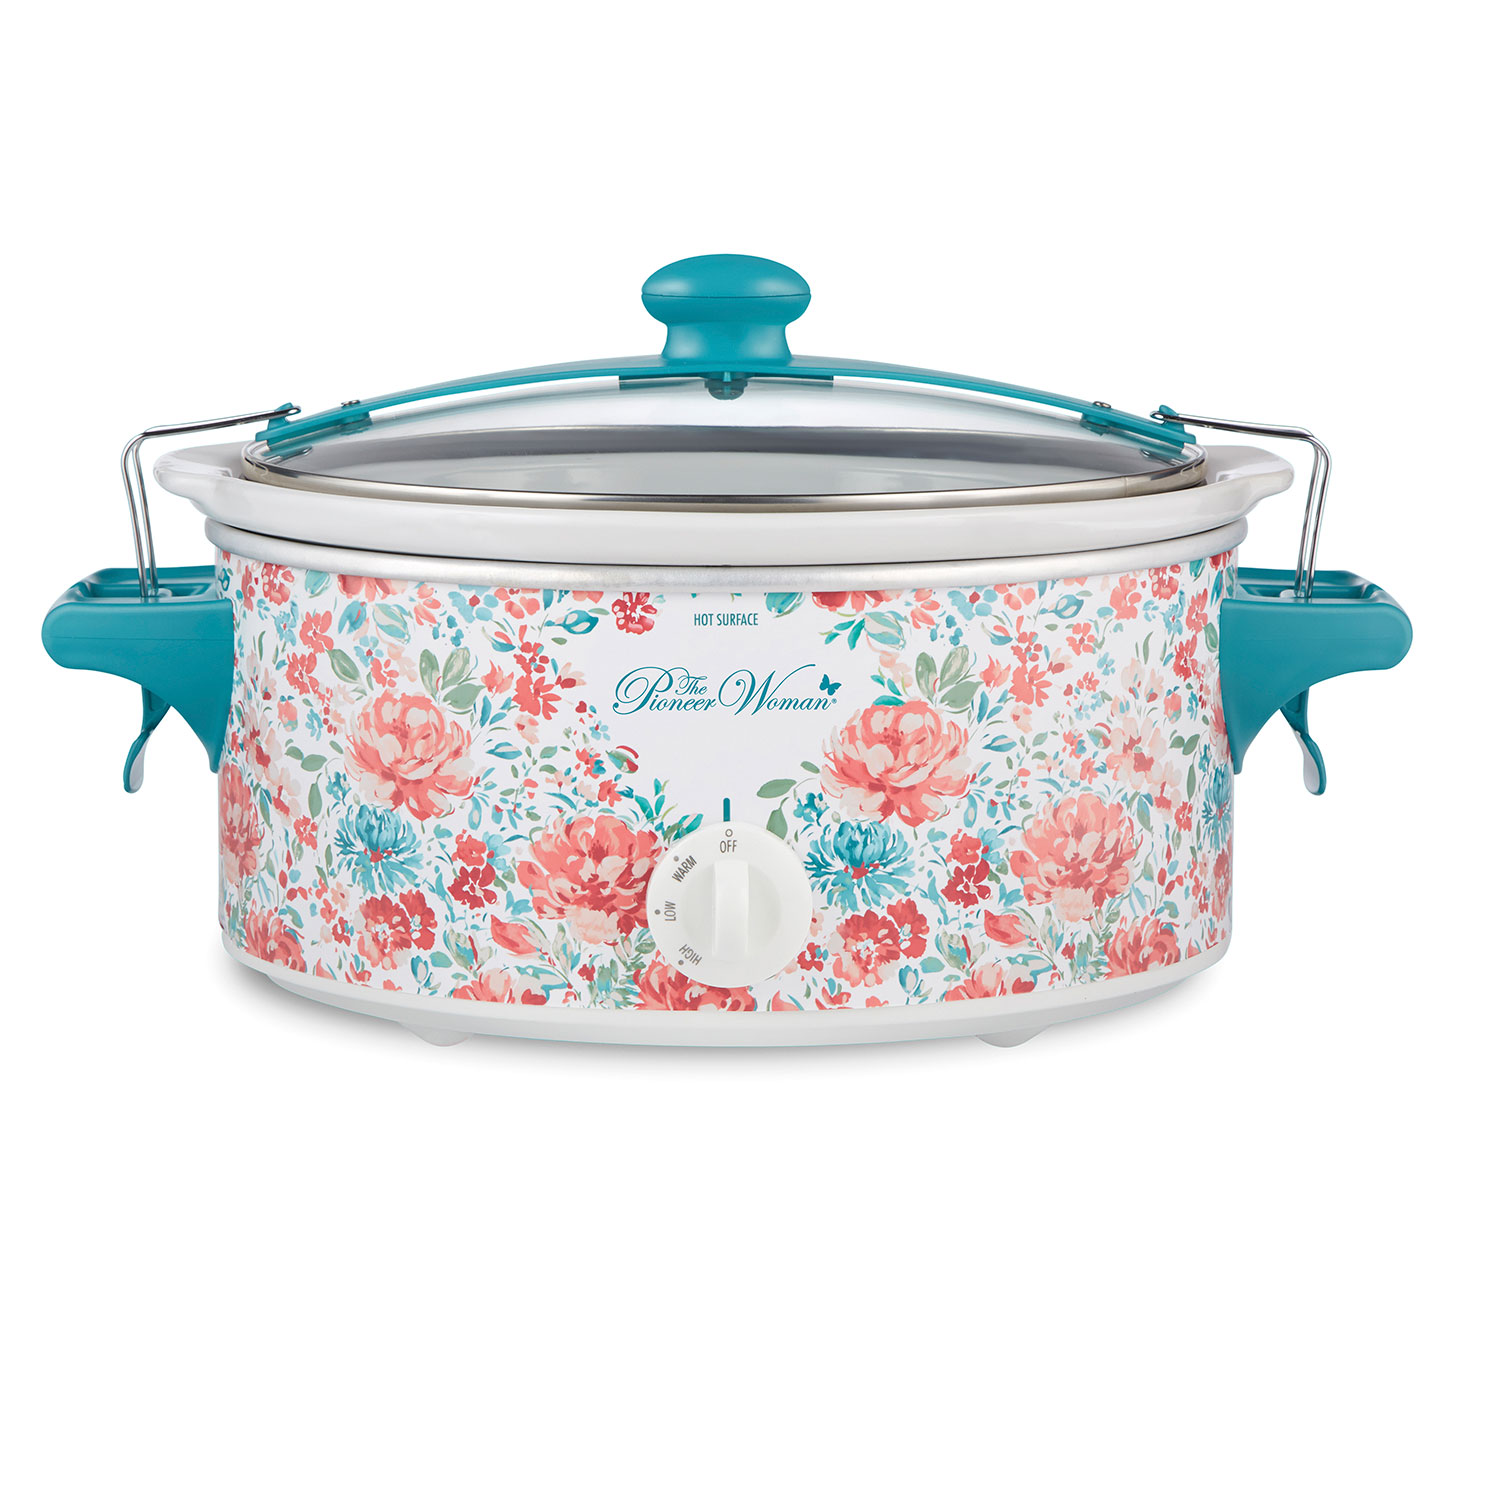 The Pioneer Woman Gorgeous Garden 6 Quart Portable Slow Cooker (33068N)